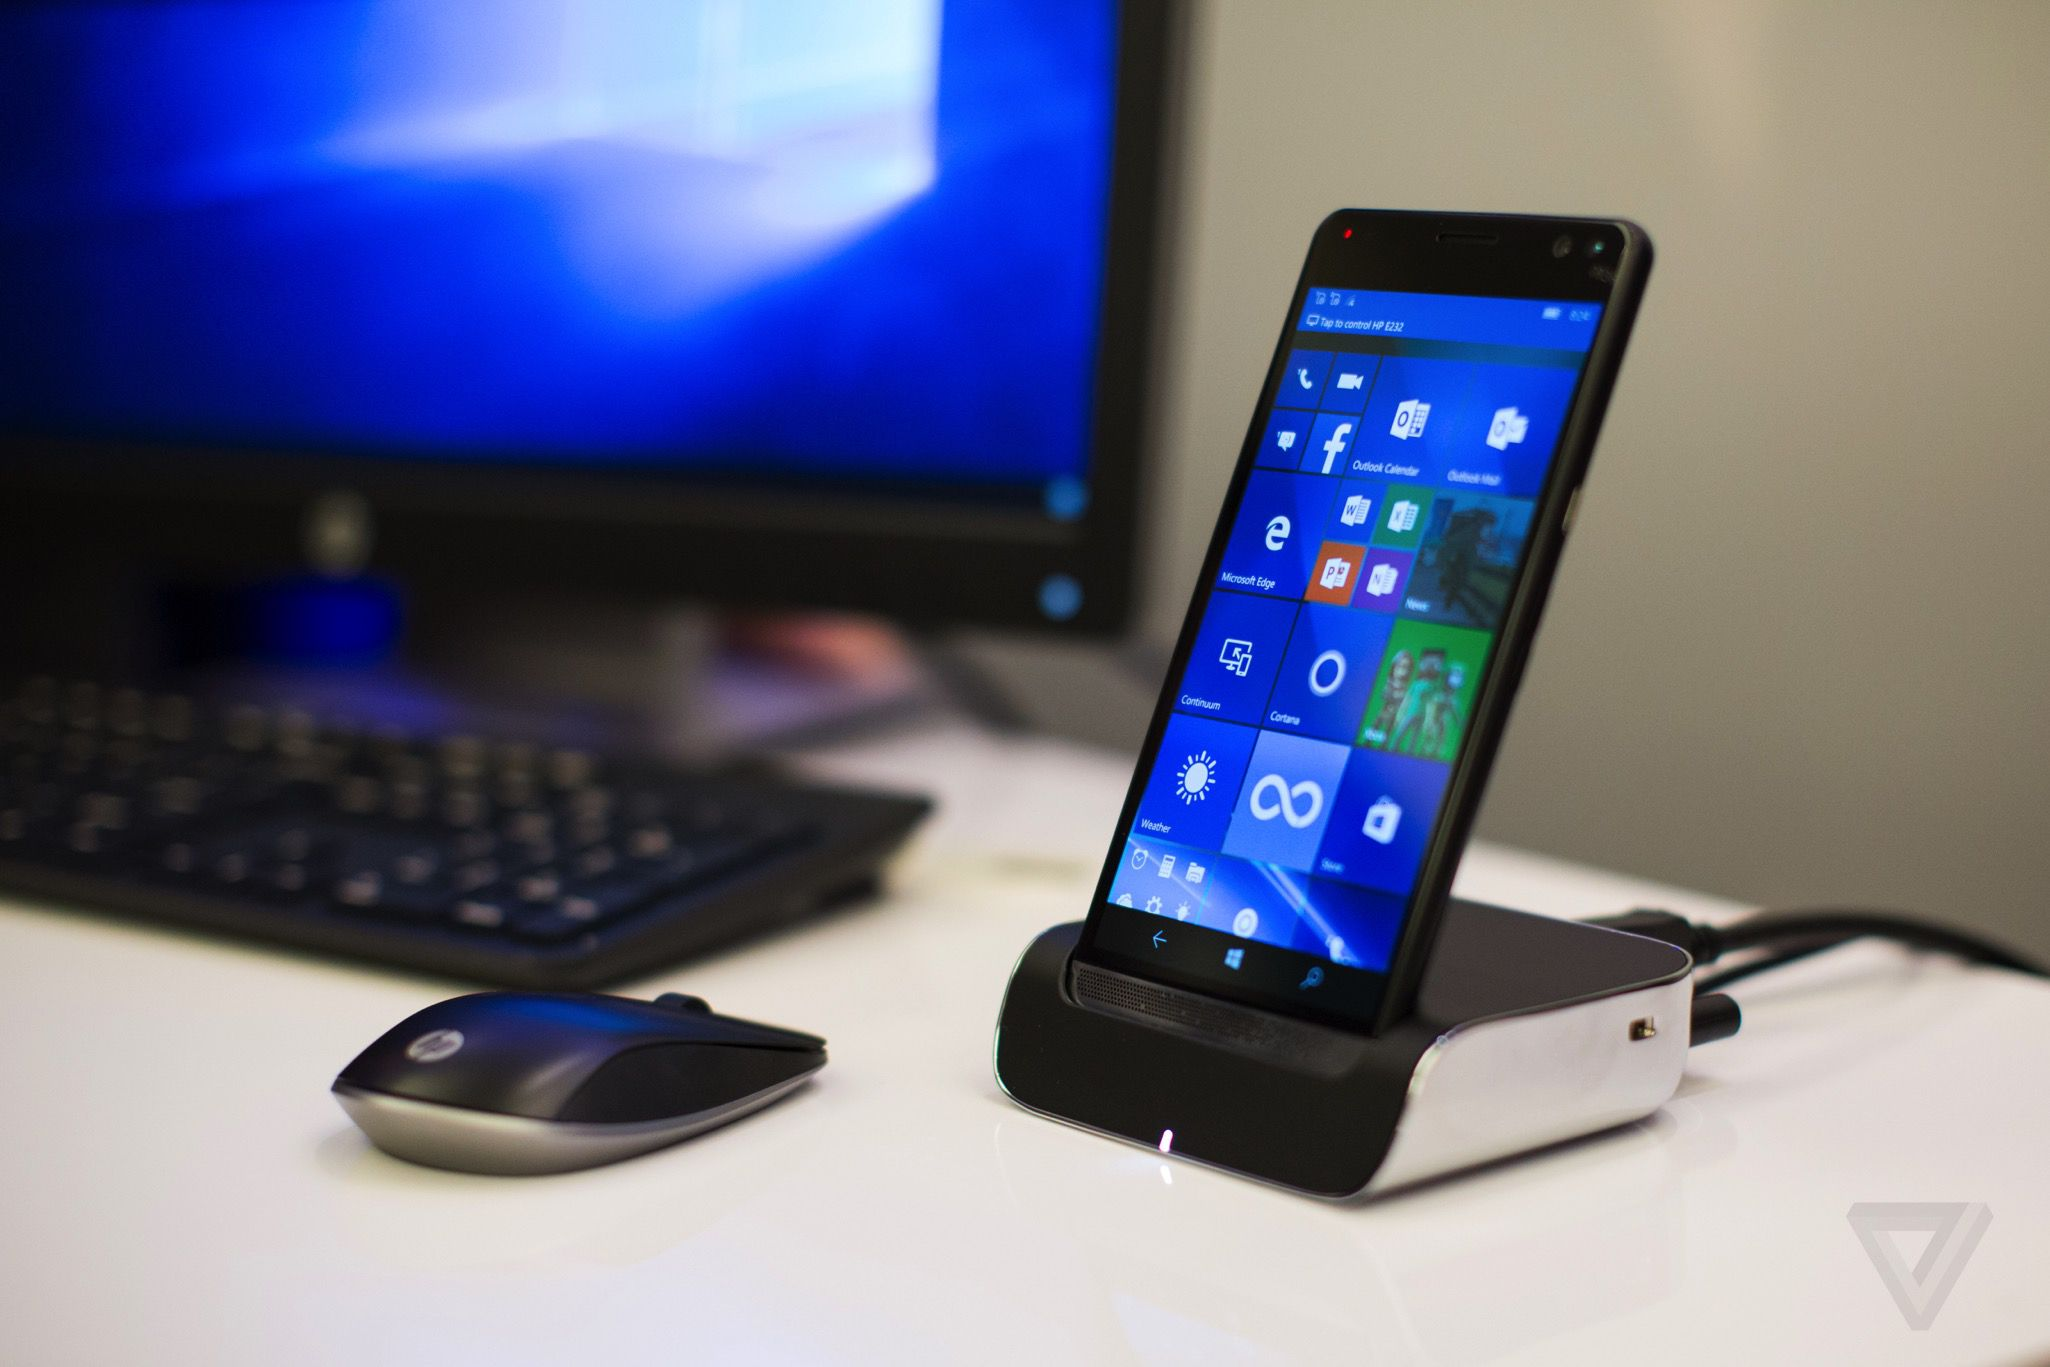 HP Elite x3 May Cost $800 In The U.S.